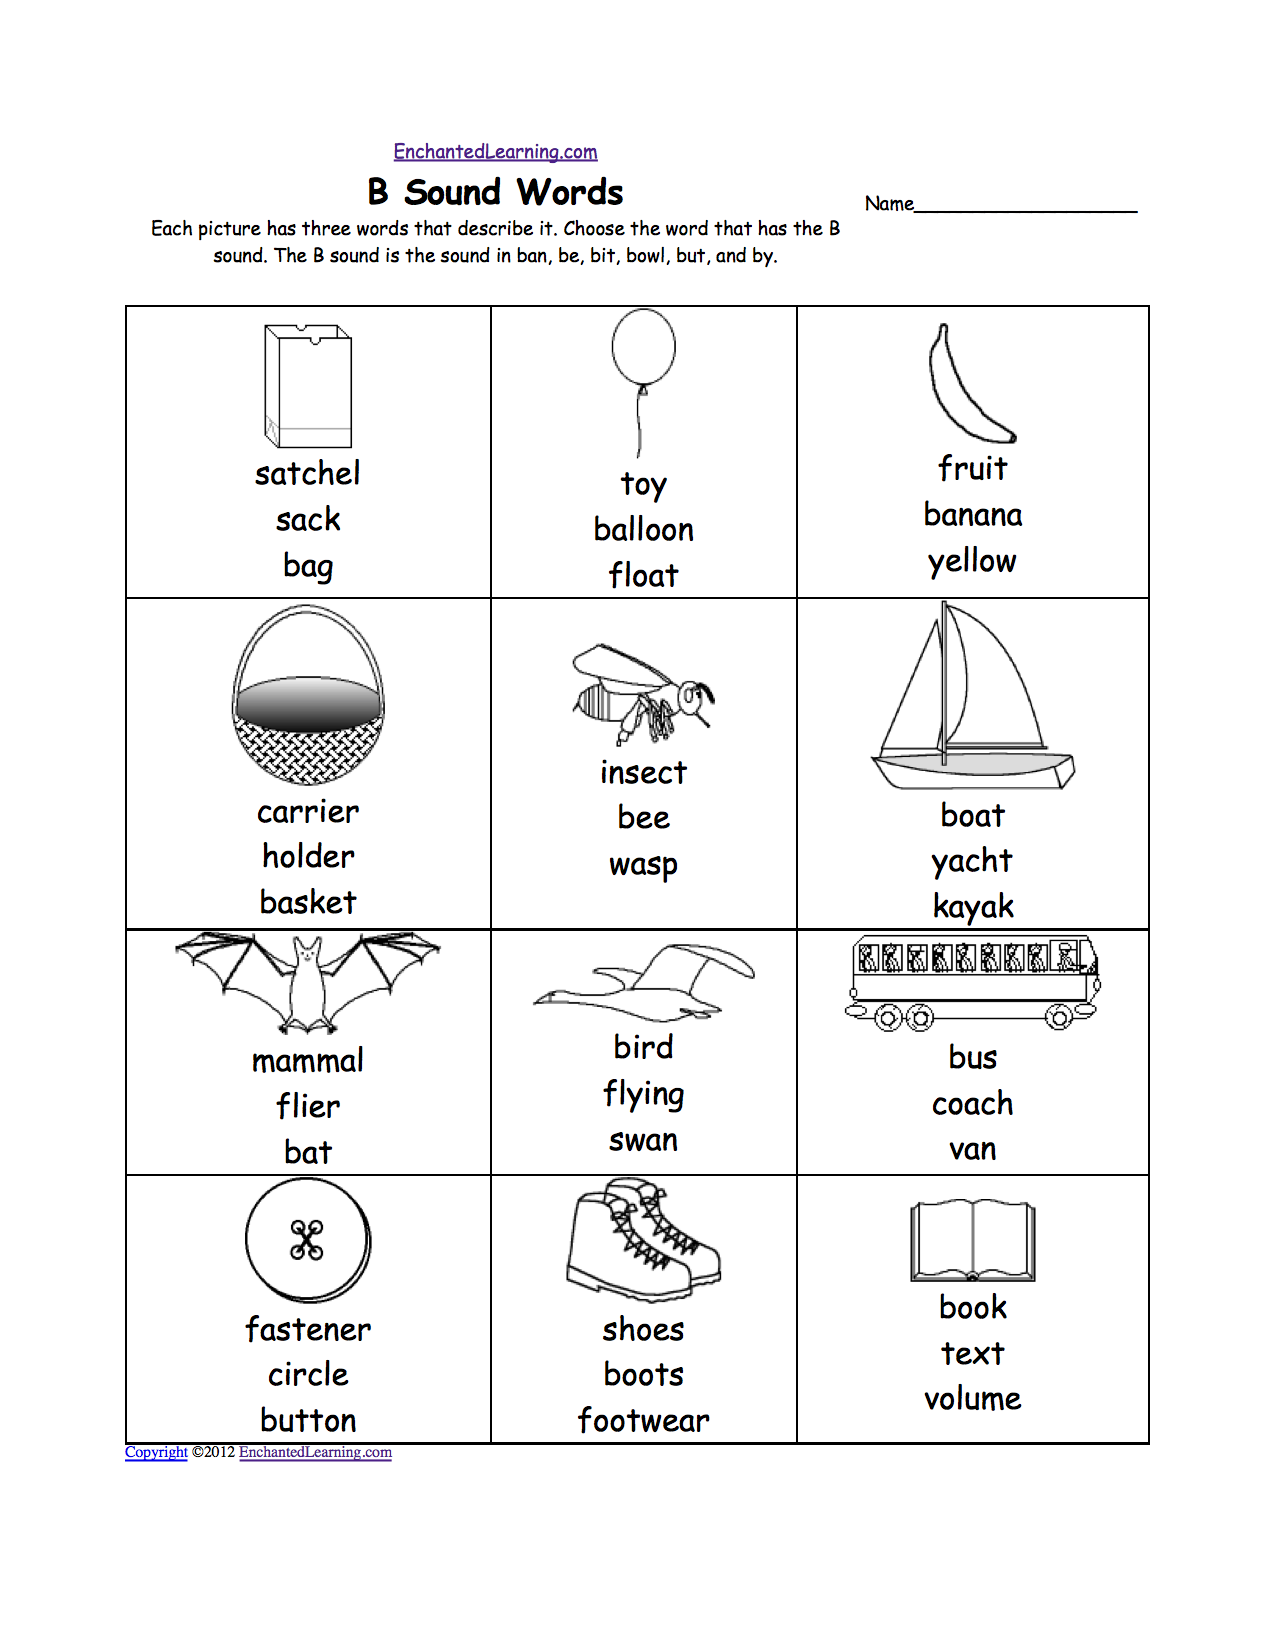 Weirdmailus  Nice Phonics Worksheets Multiple Choice Worksheets To Print  With Glamorous Quotbquot Sound Phonics Worksheet Multiple Choice Each Picture Has Three Words That Describe It Choose The Word That Has A Quotbquot Sound The Quotbquot Sound Is The Sound  With Beauteous System Of Equation Worksheet Also Nd Grade Main Idea Worksheets In Addition Excel Math Worksheets And Build A Budget Worksheet As Well As Scientific Investigation Worksheet Additionally Sentence Fluency Worksheets From Enchantedlearningcom With Weirdmailus  Glamorous Phonics Worksheets Multiple Choice Worksheets To Print  With Beauteous Quotbquot Sound Phonics Worksheet Multiple Choice Each Picture Has Three Words That Describe It Choose The Word That Has A Quotbquot Sound The Quotbquot Sound Is The Sound  And Nice System Of Equation Worksheet Also Nd Grade Main Idea Worksheets In Addition Excel Math Worksheets From Enchantedlearningcom